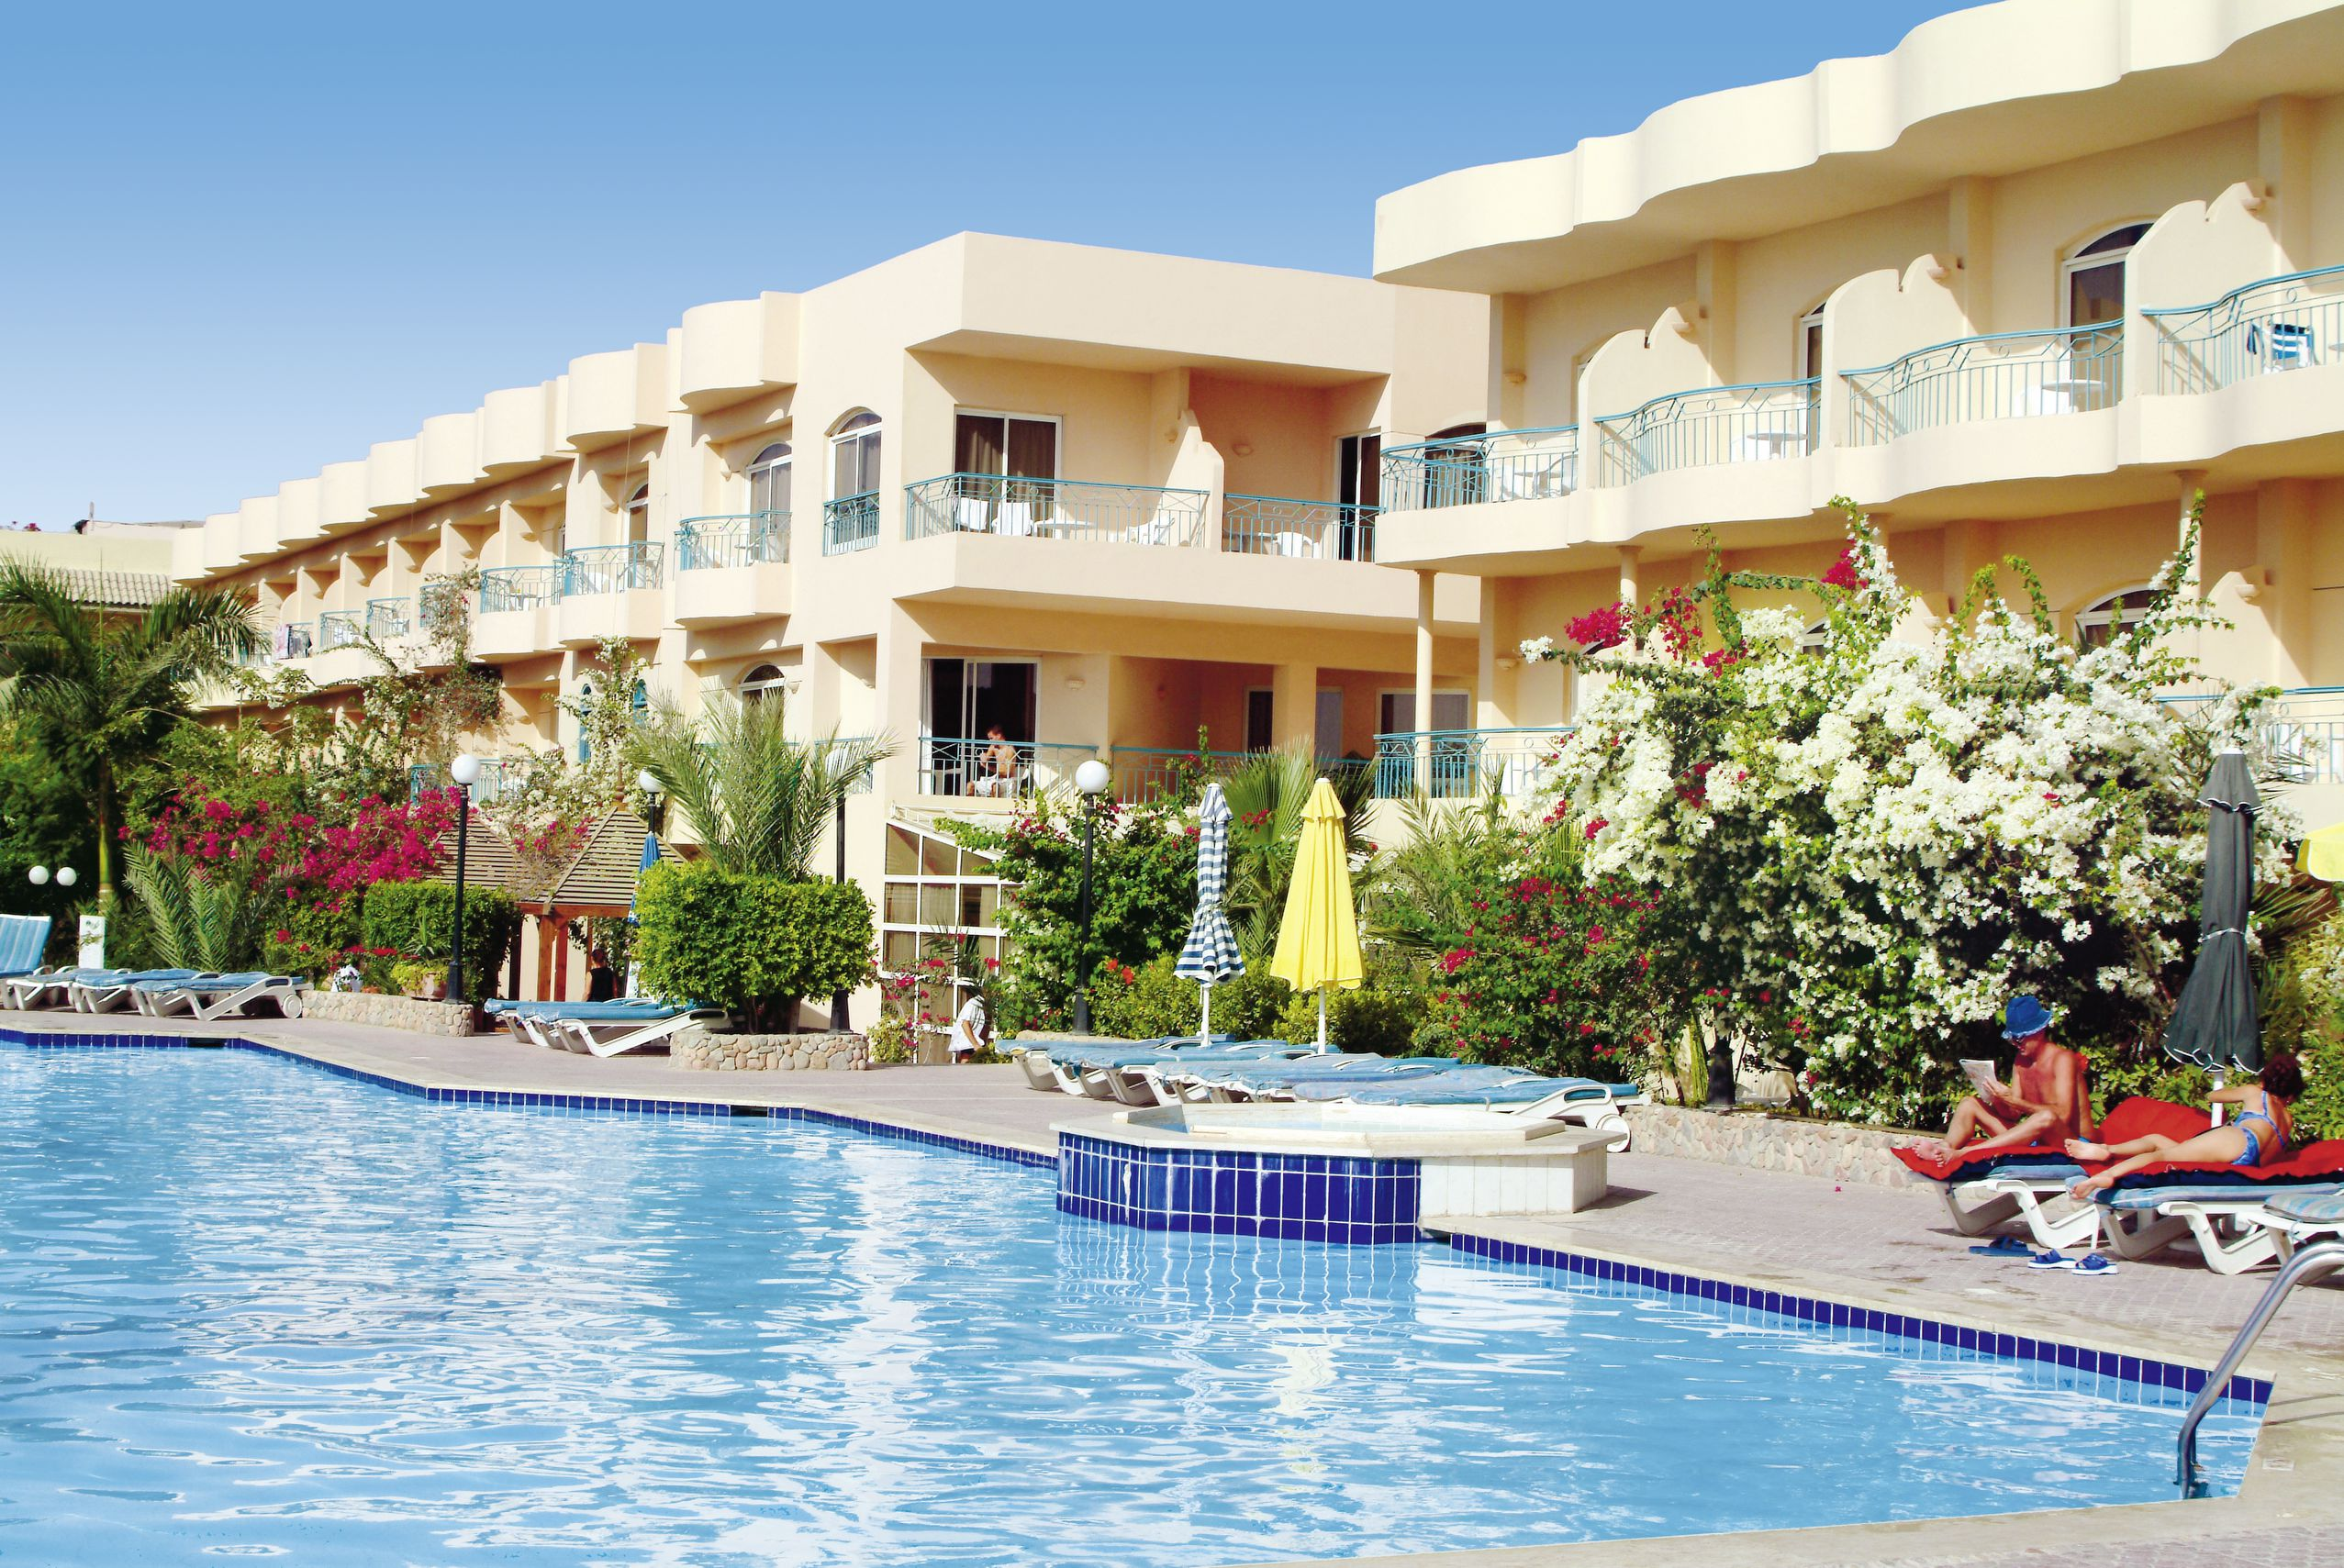 Egypte - Mer Rouge - Hurghada - Hôtel Bella Vista Resort 4*